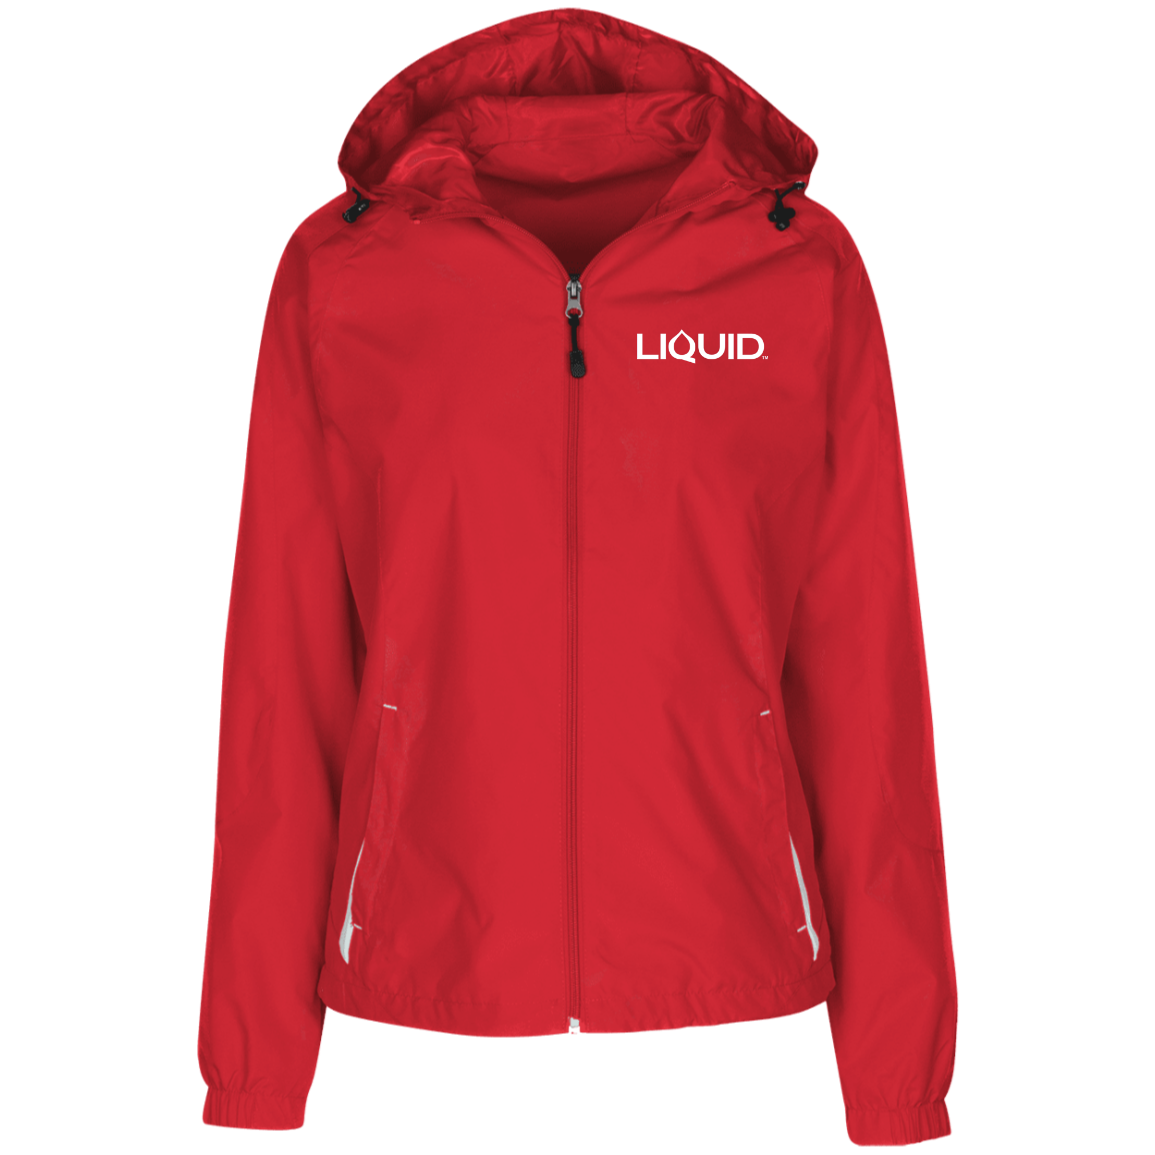 LST76 Ladies' Jersey-Lined Hooded Windbreaker - Liquid Hydration Gear